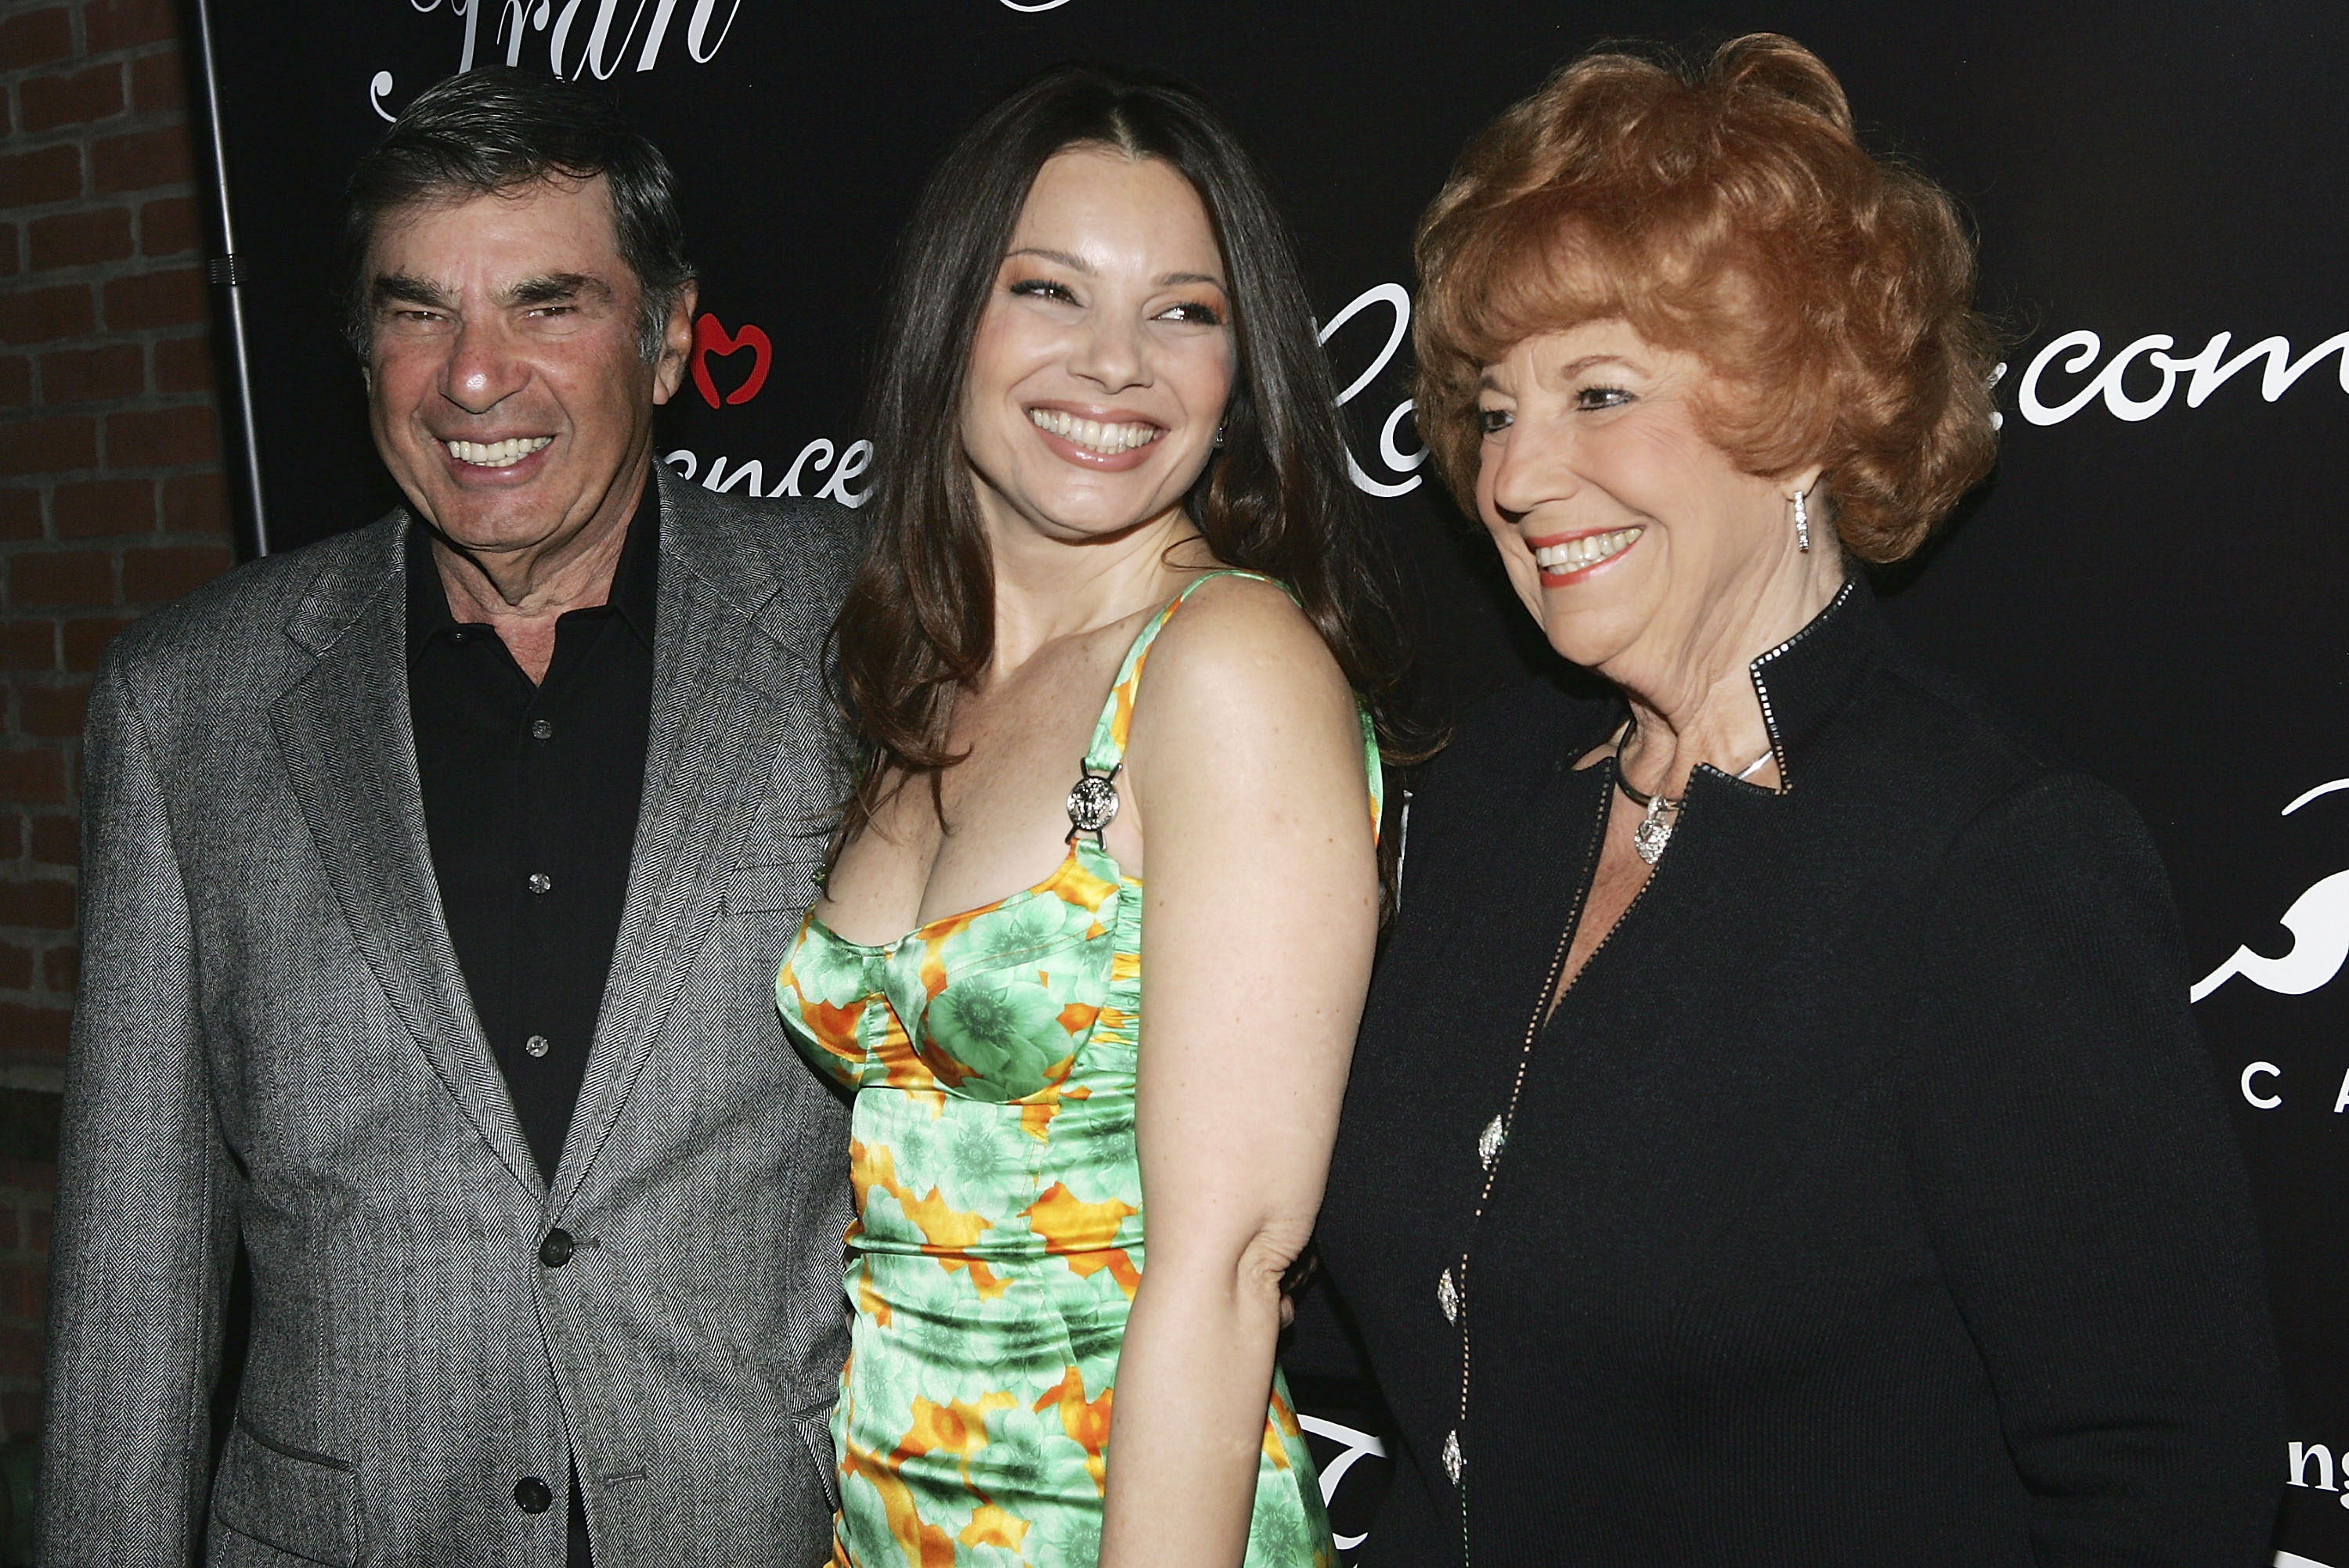 Marty, Fran and Sylvia Drescher. Image Credit: Getty Images